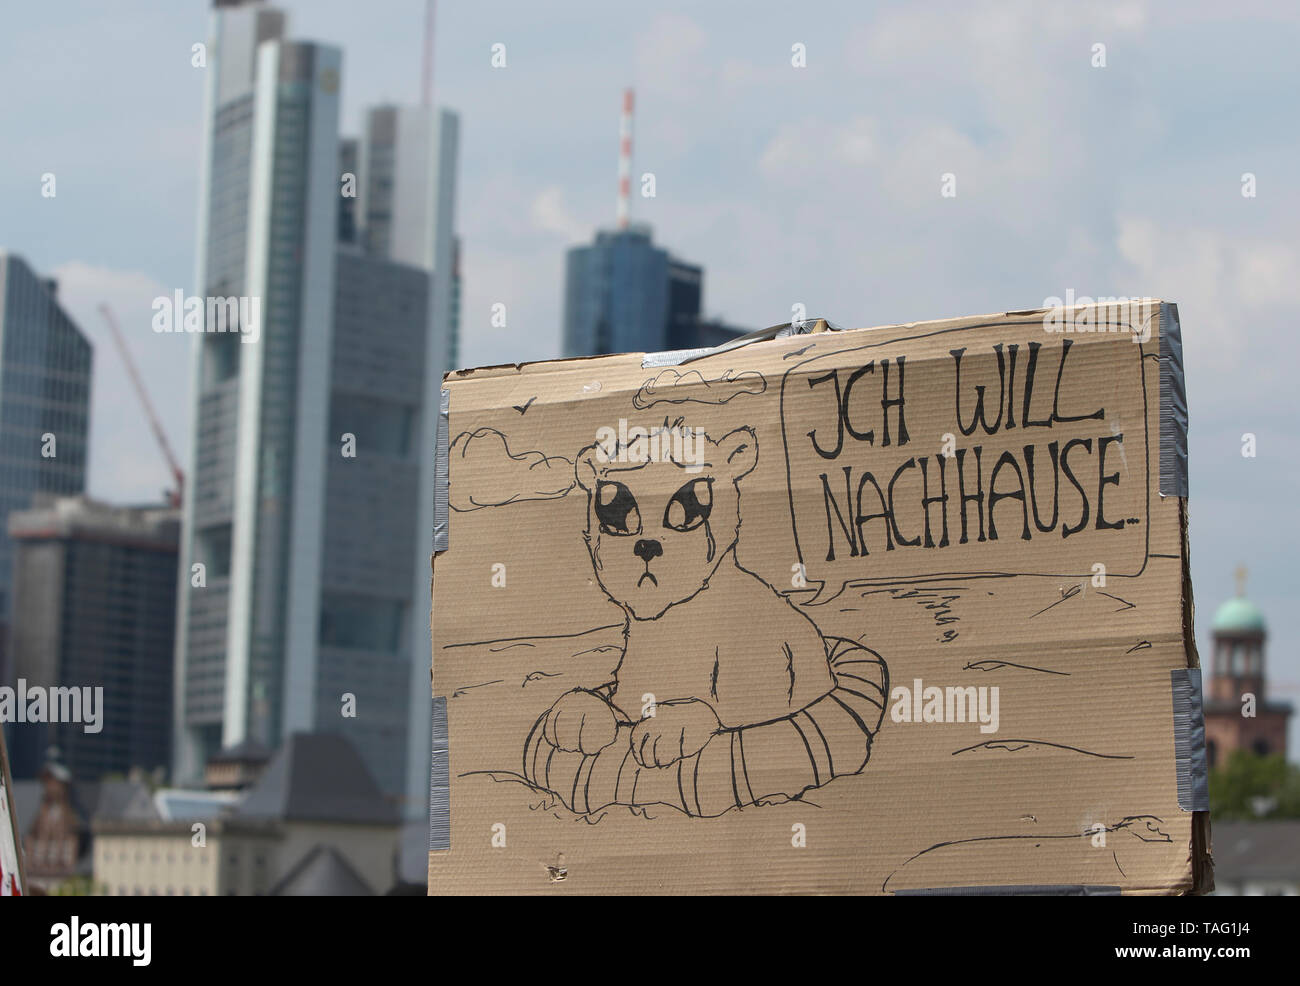 A protester carries a sign that reads 'I want to go home', with the drying of a Polar Bear in a lifebuoy. The Frankfurt skyline can be seen in the background. Around 4,500 young people marched through Frankfurt to the European Central Bank, to protest against the climate change and for the introduction of measurements against it. The protest took place as part of an Europe wide climate strike, two days ahead of the 2019 European elections. (Photo by Michael Debets/Pacific Press - Stock Image